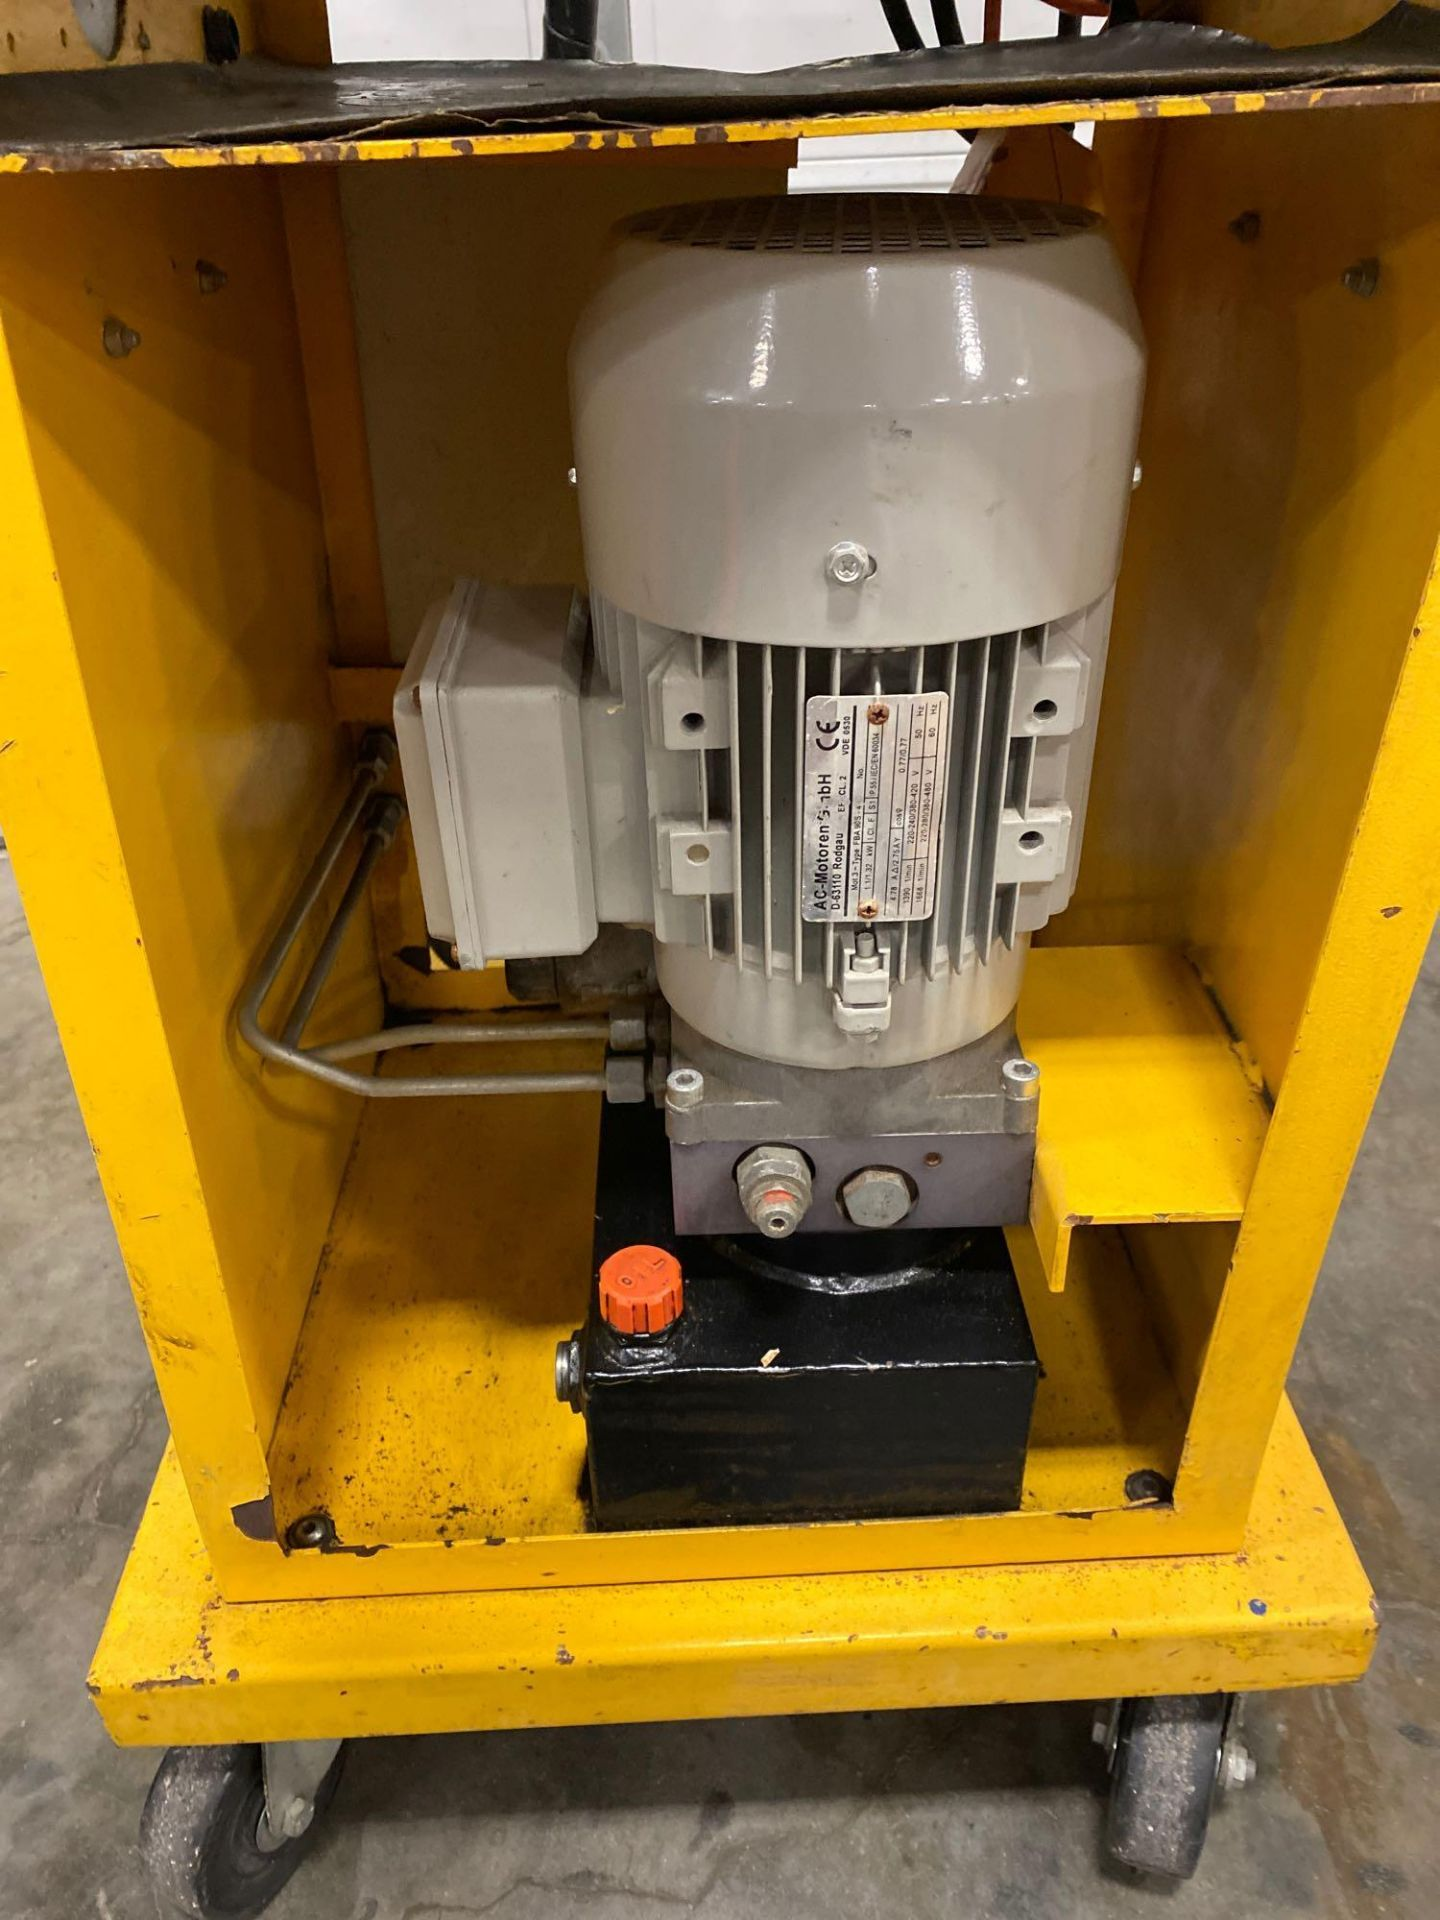 Lot 12C - 2013MOBILE HYDRAULIC PIPE BENDER, PUMP, TANK, PENDANT CONTROLLER, RUNS AND OPERATES